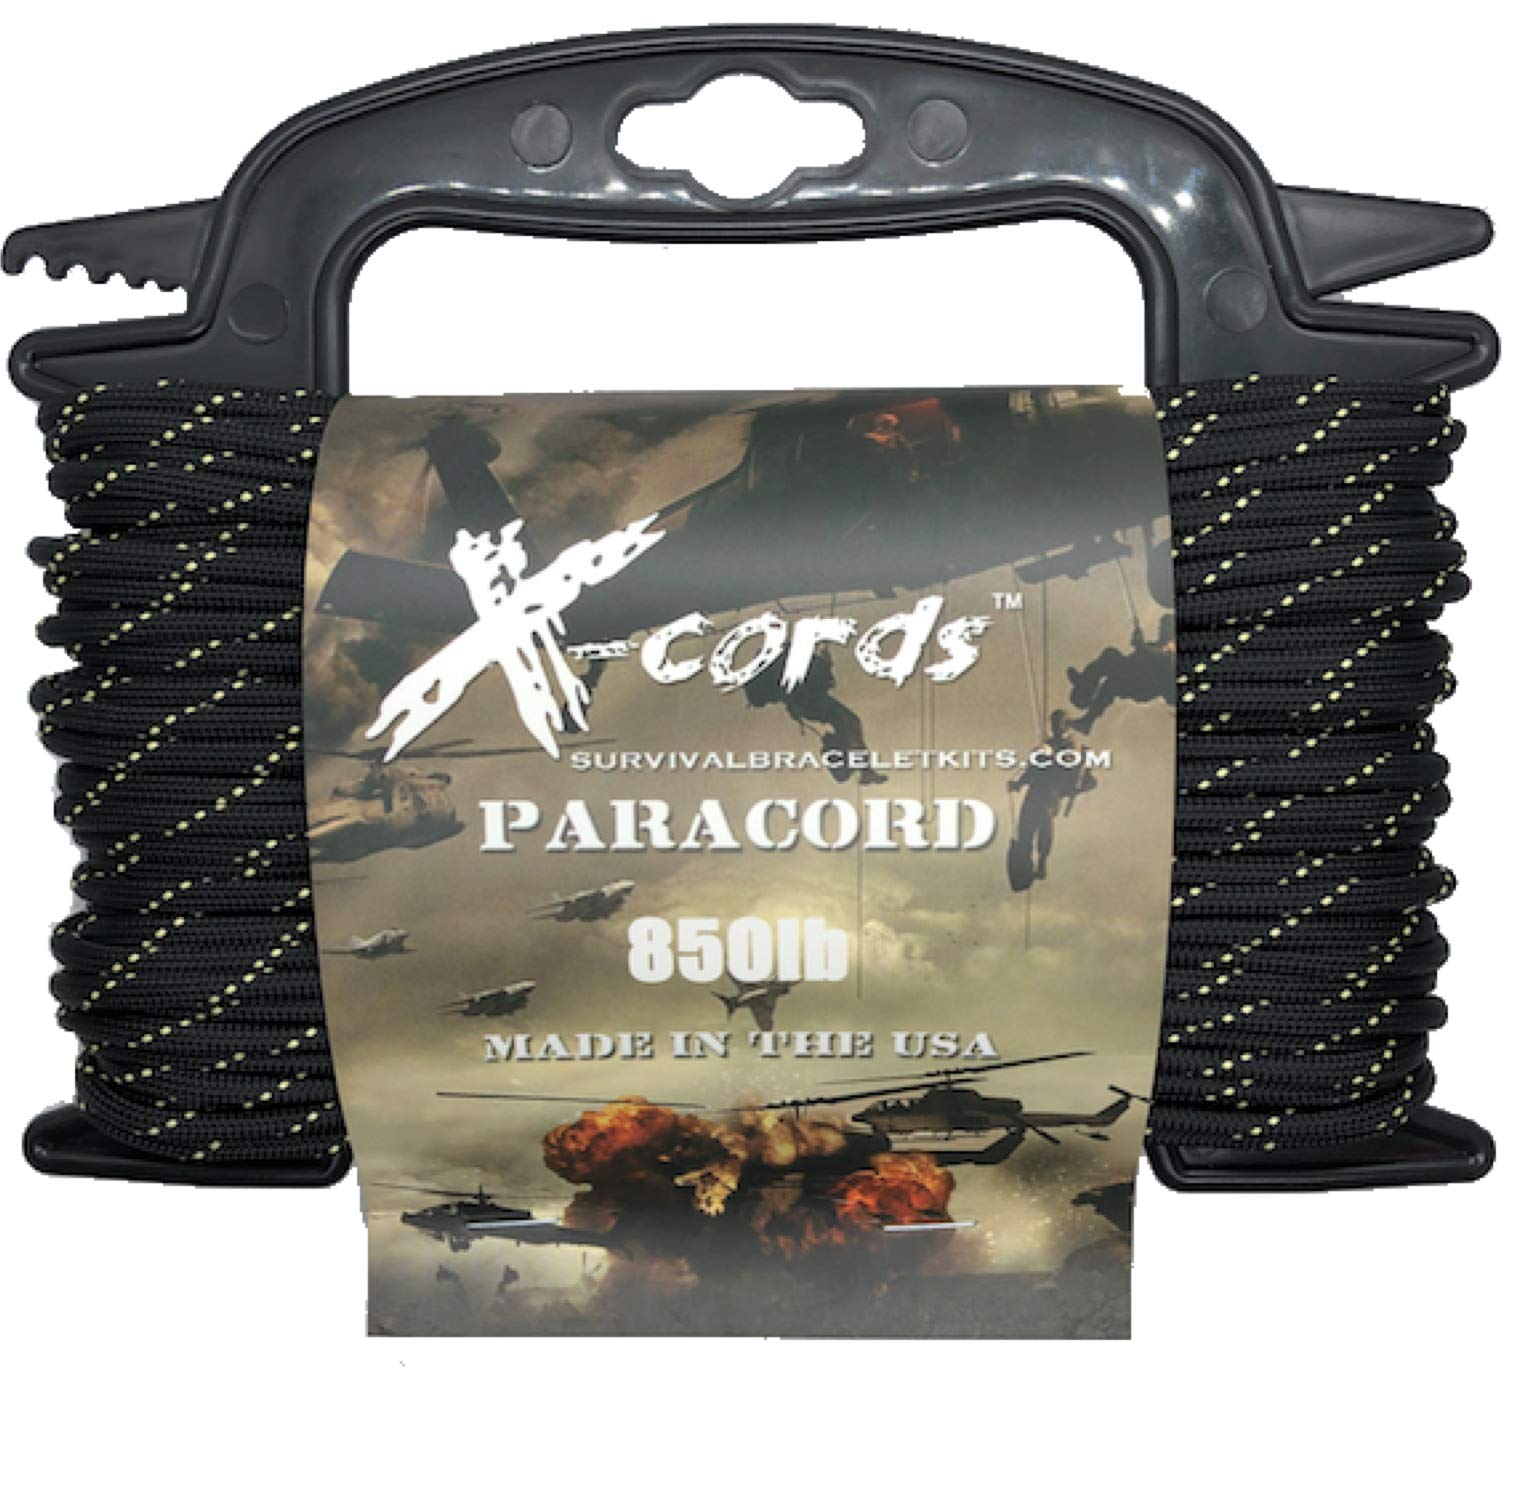 X-CORDS Paracord 850 Lb Stronger Than 550 and 750 Made by Us Government Certified Contractor (100' Black Diamond Kevlar ON Spool) by X-CORDS (Image #1)